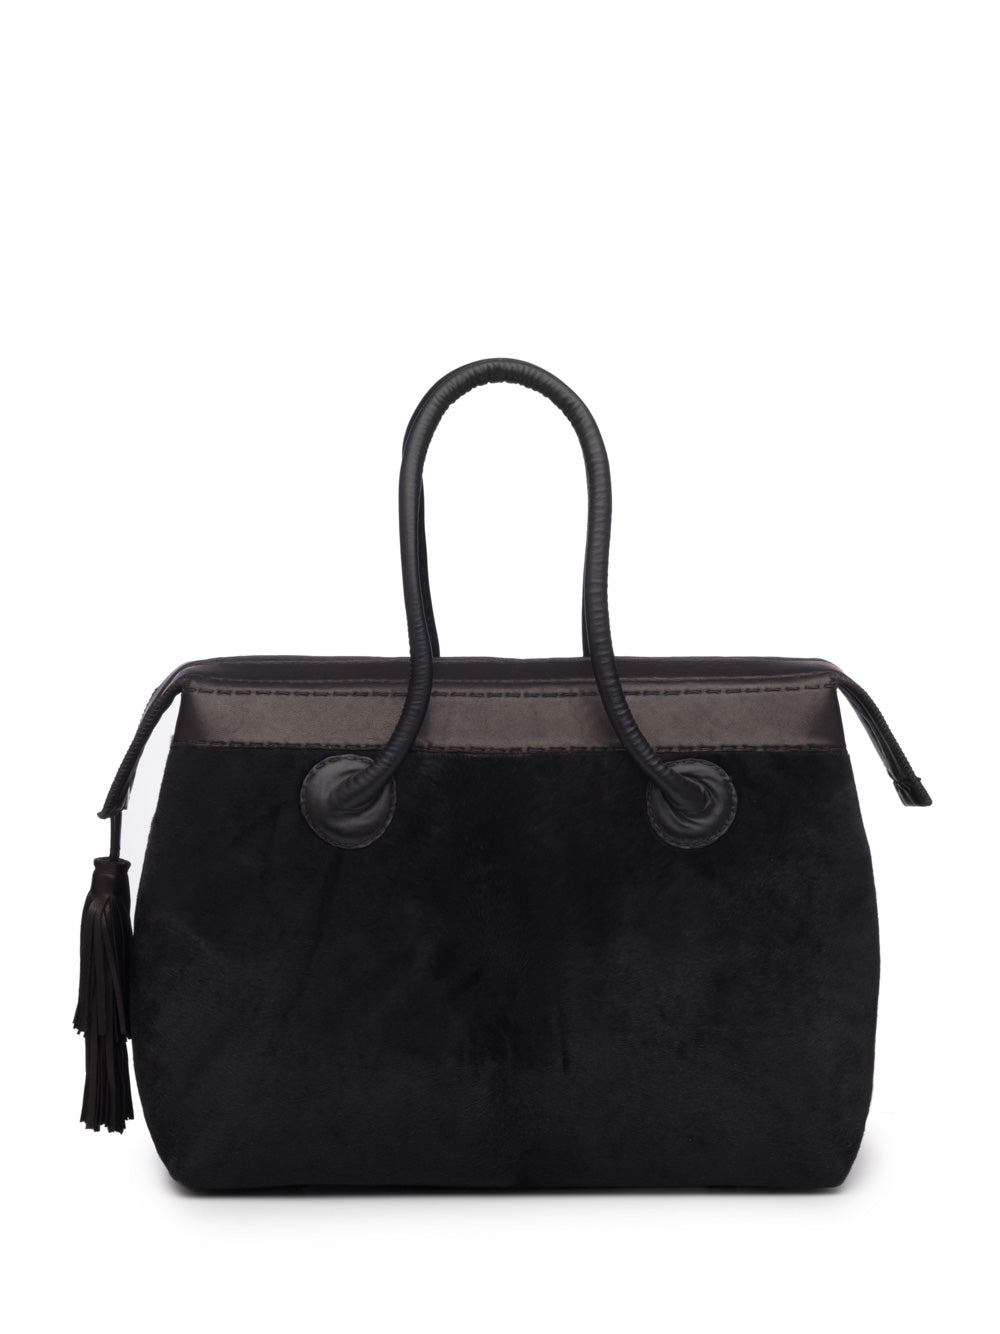 Black Pony Handbag